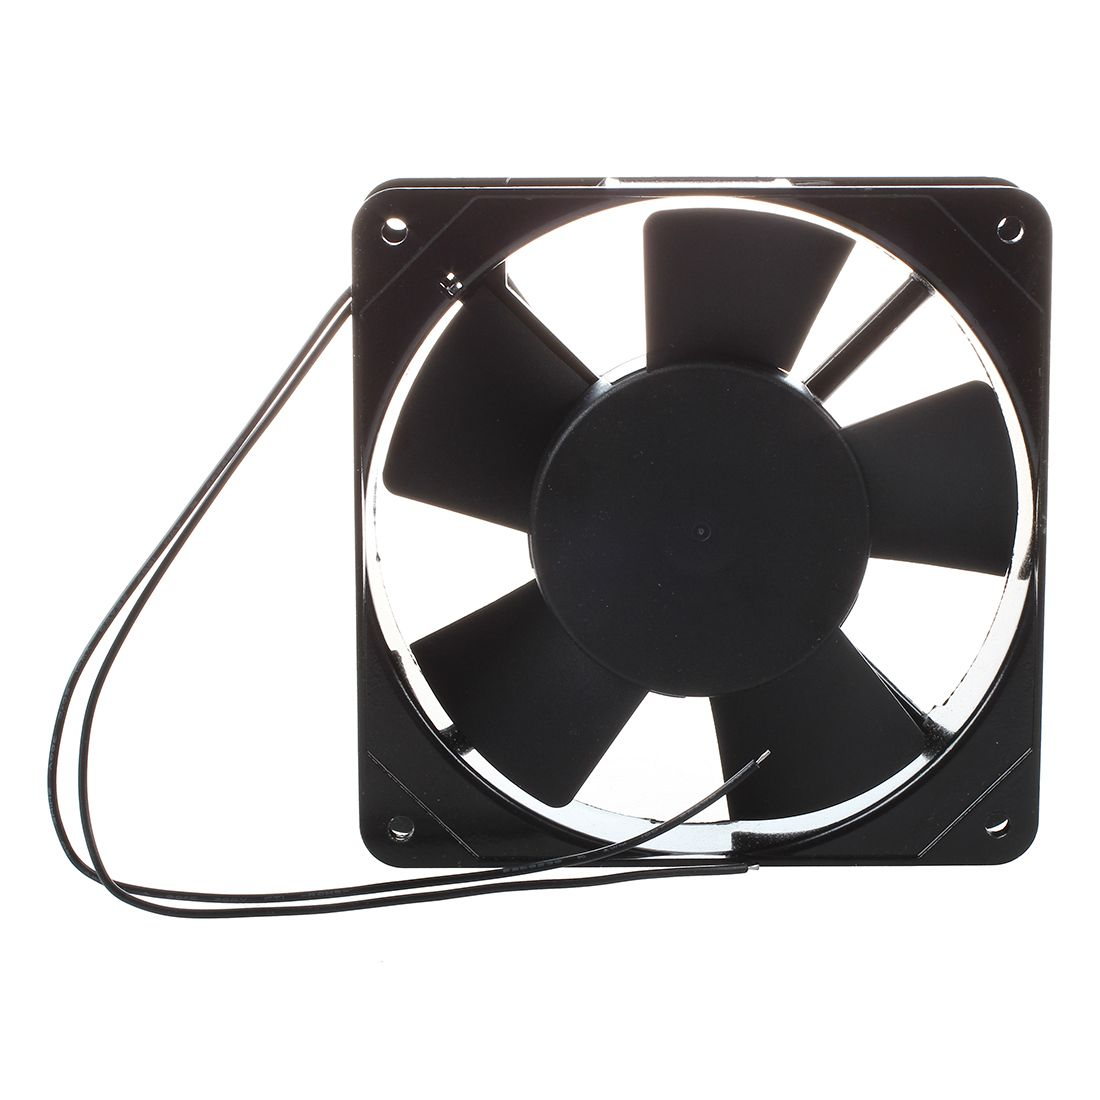 AC VV xx mm Fan for PC Black Computer Components